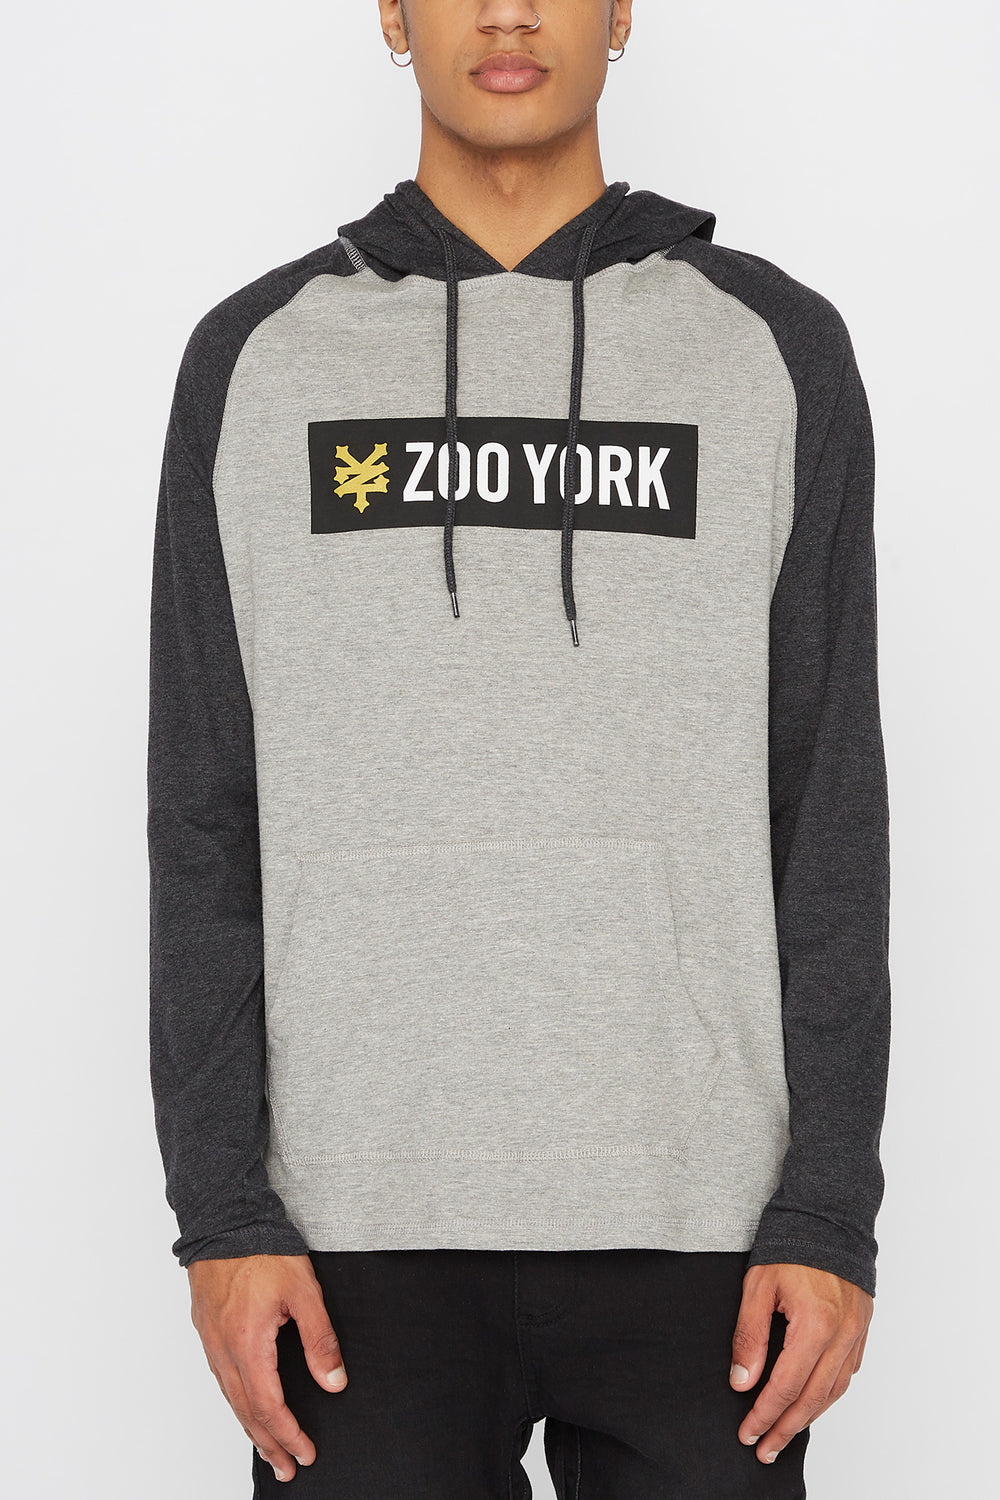 Zoo York Mens Hooded Long Sleeve Shirt Heather Grey